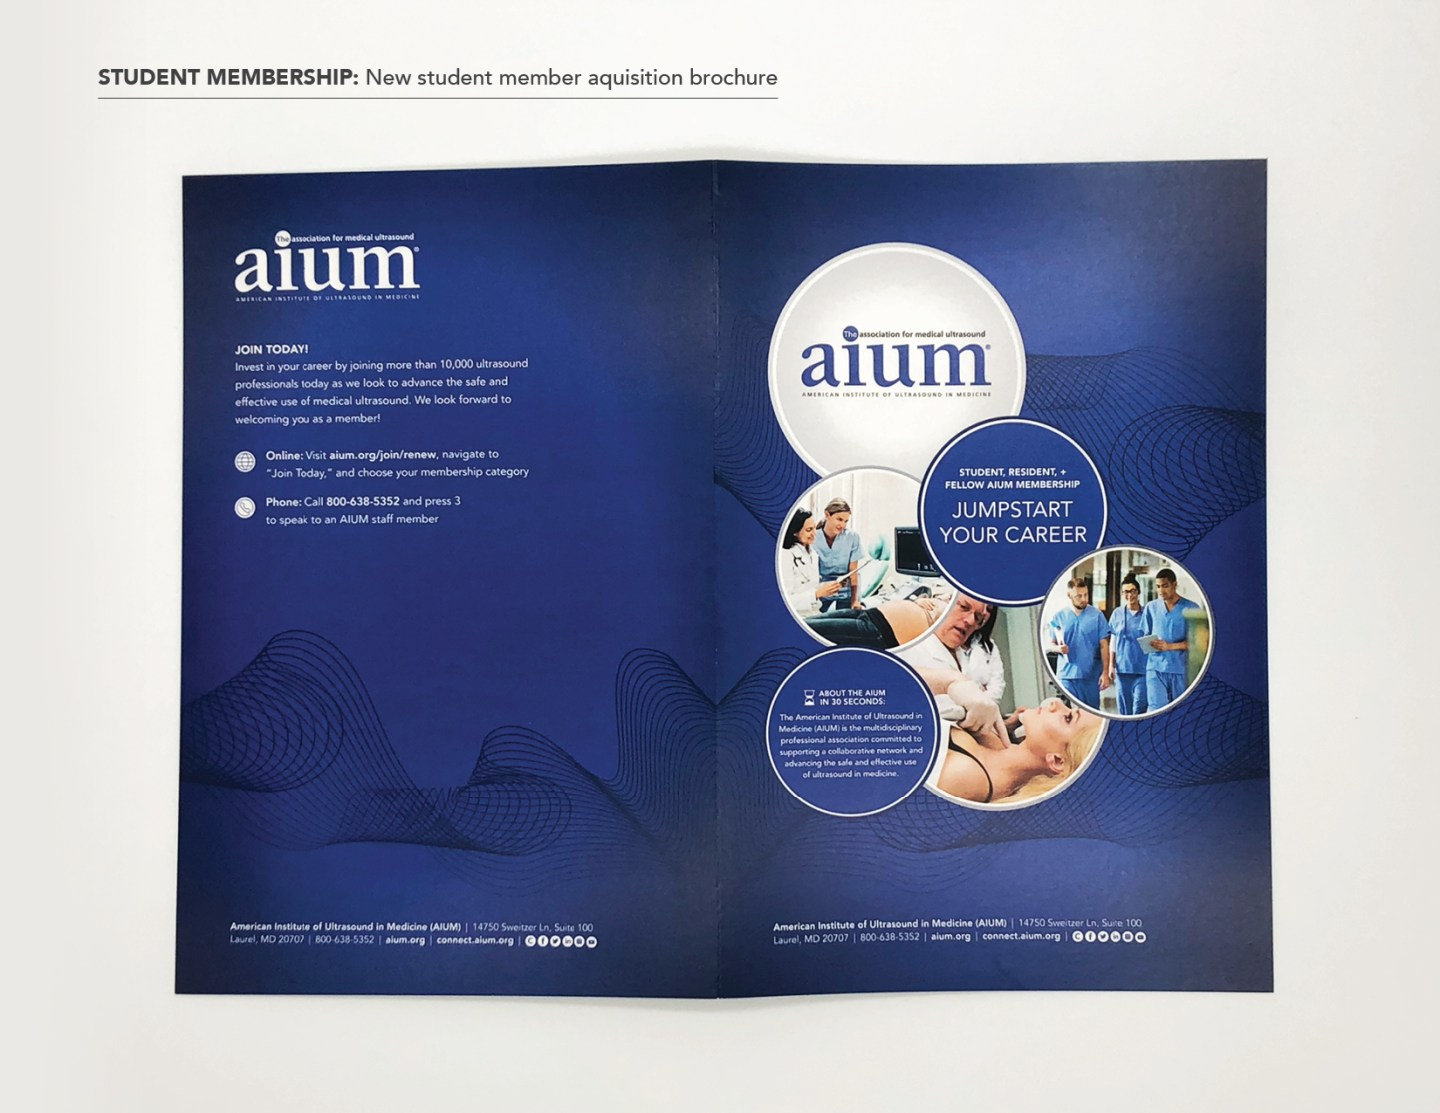 Membership acquisition brochure